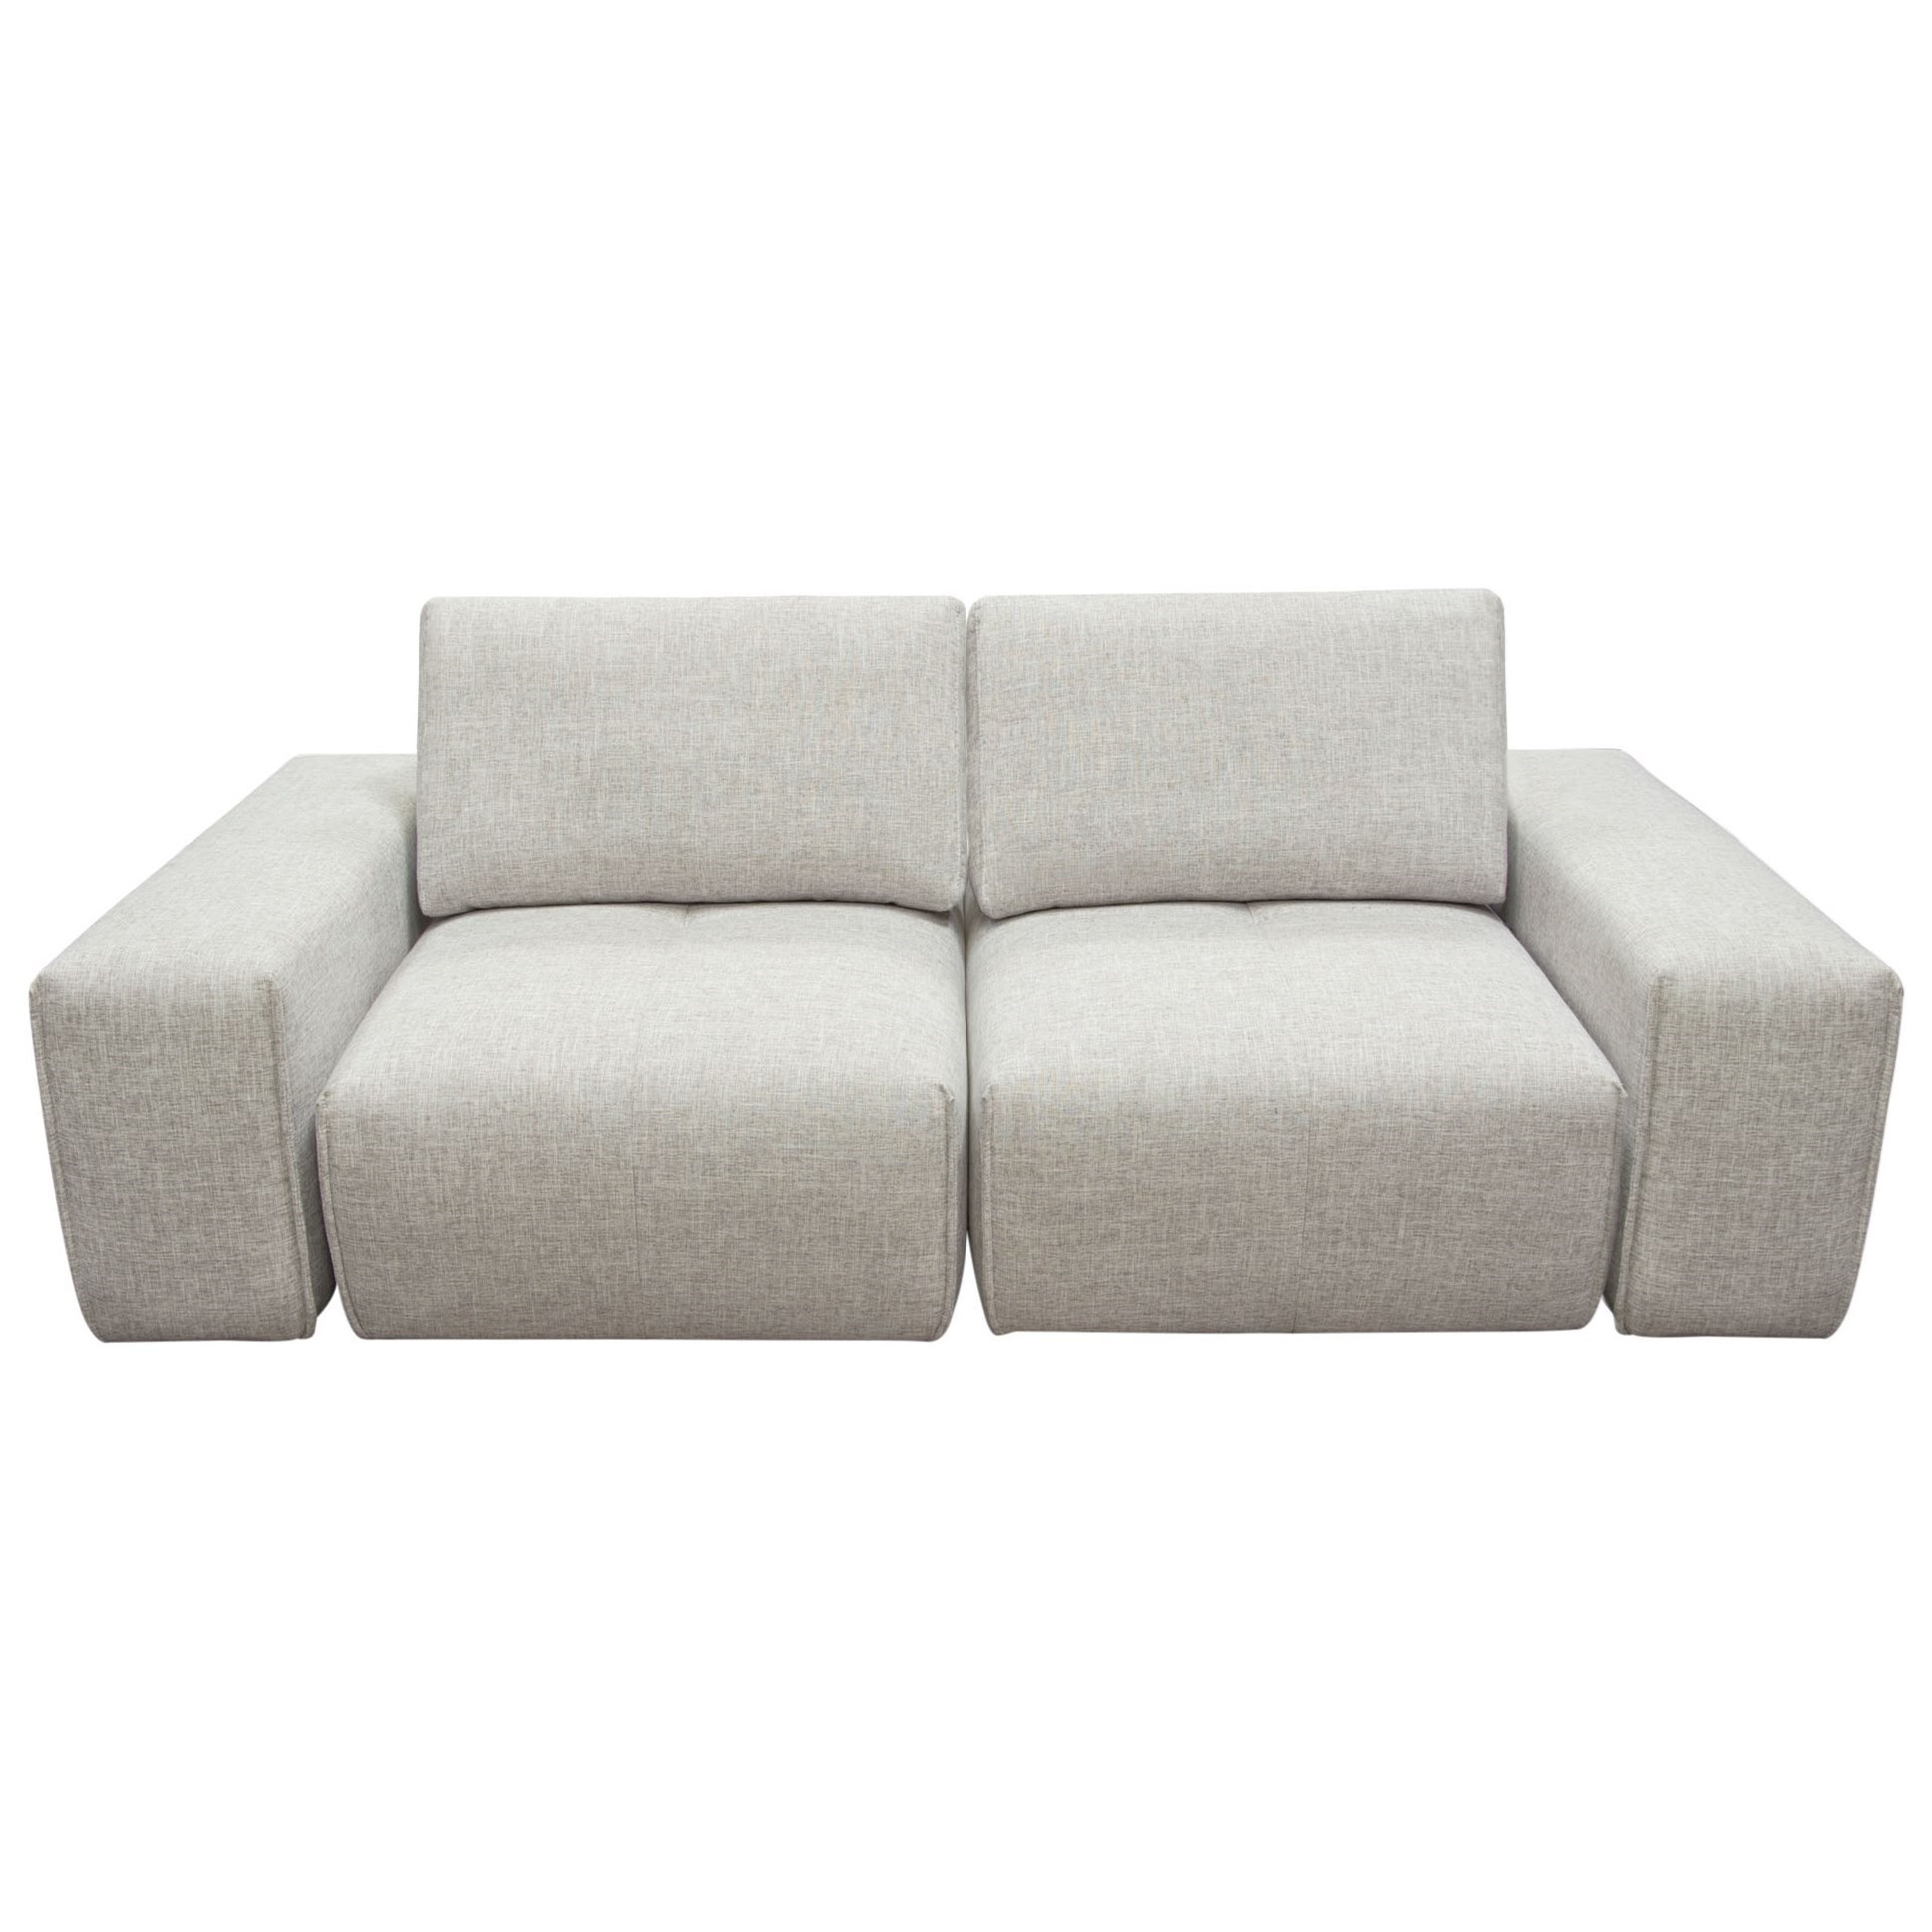 Jazz Loveseat by Diamond Sofa at HomeWorld Furniture